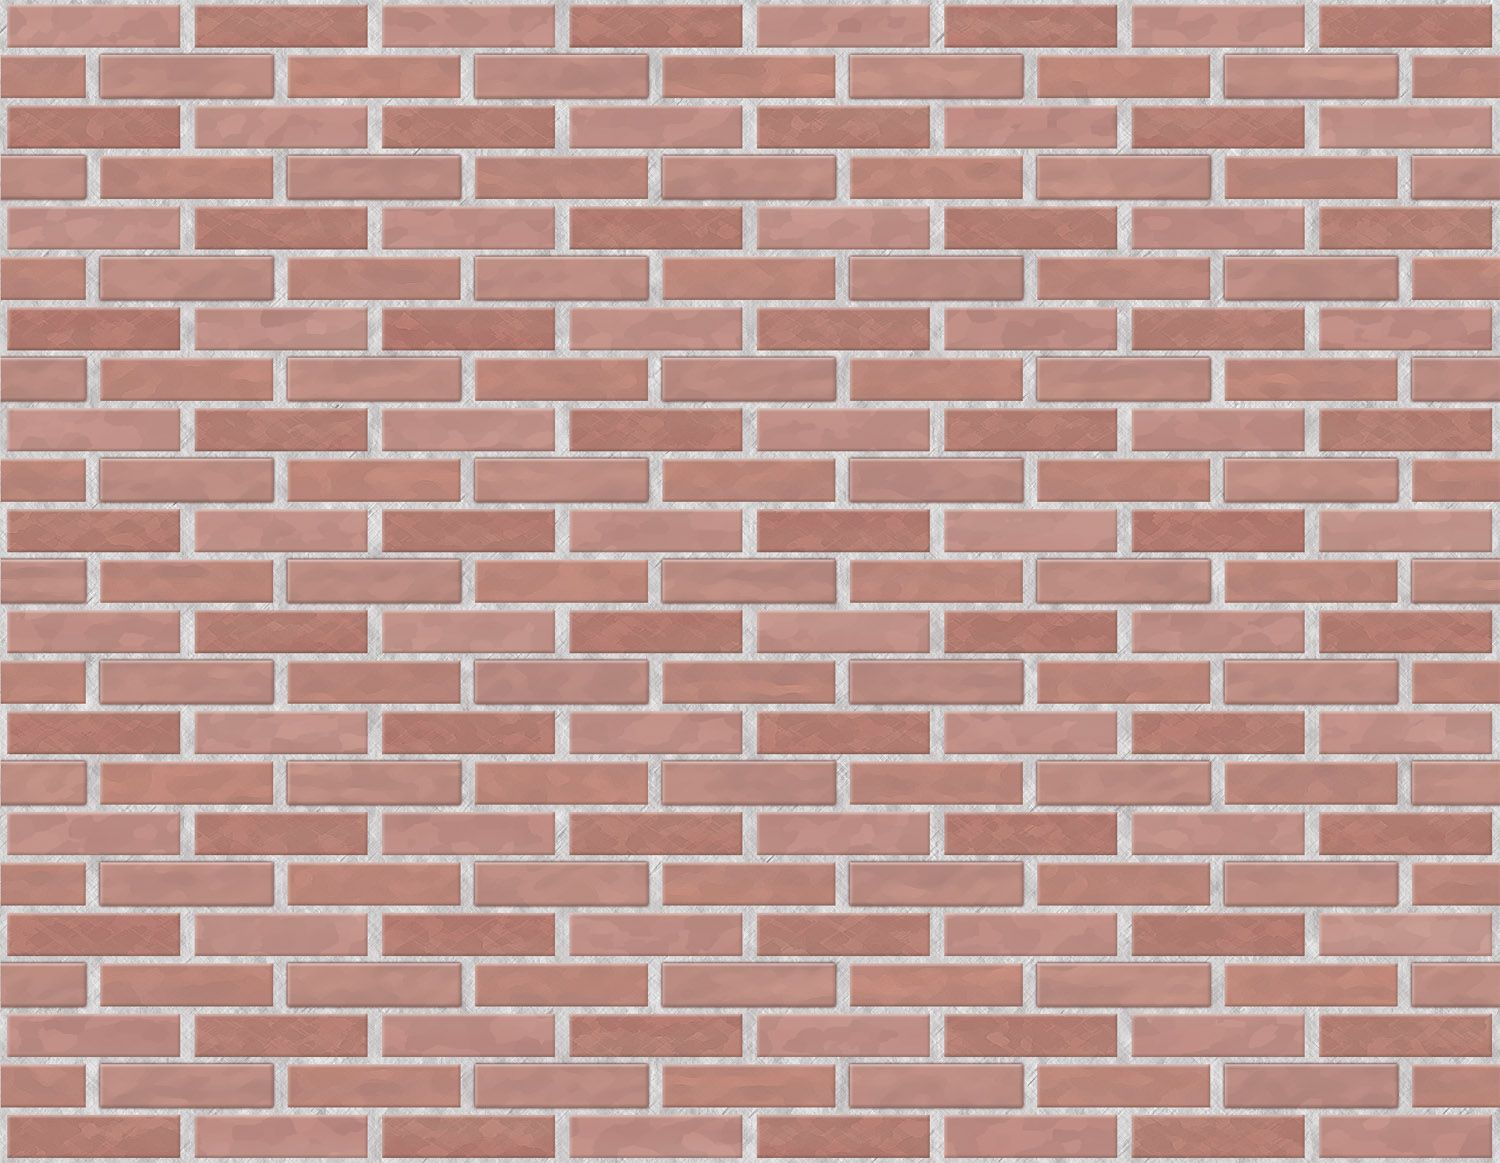 Printable Wallpapers Bricks Bricks Wall Carte Da Parati